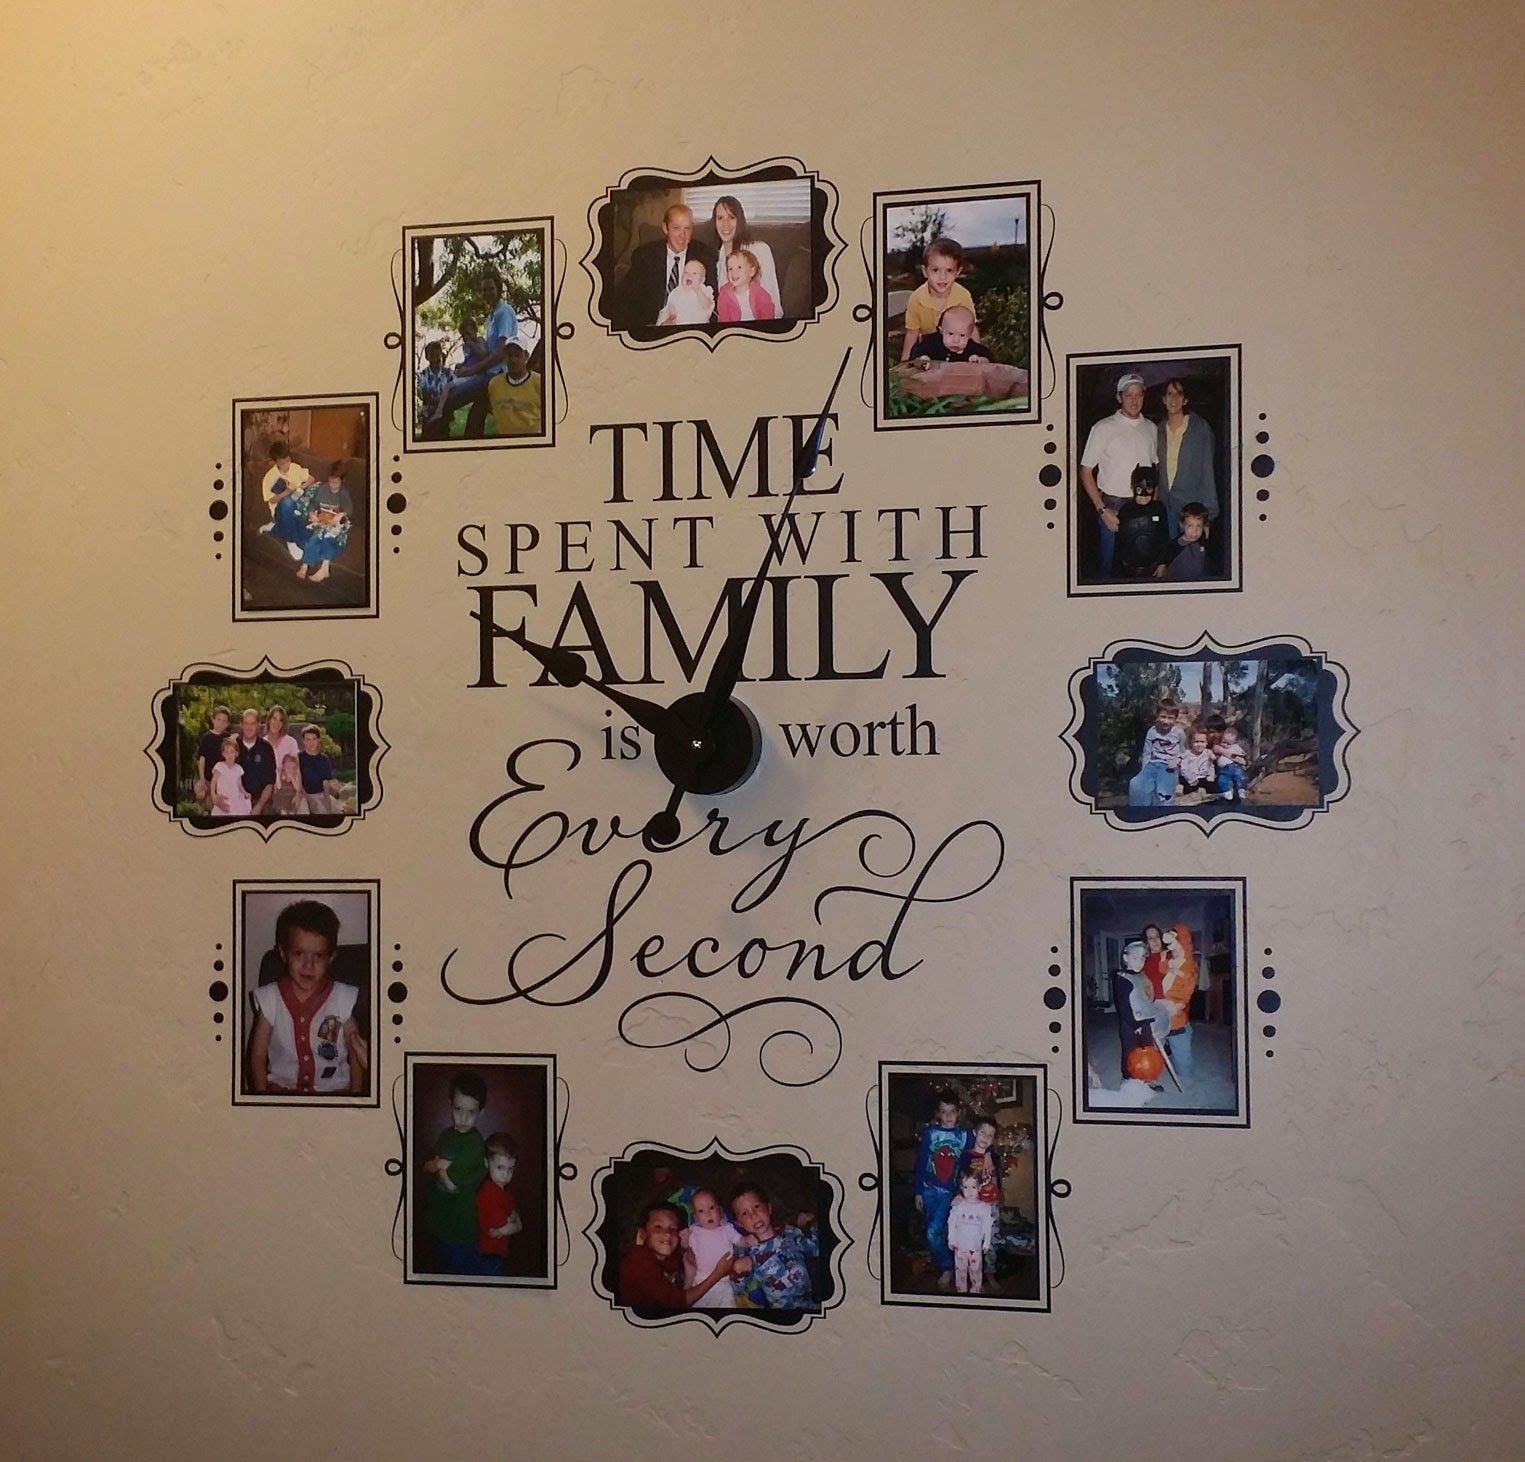 Vinyl 4 Decor Coupon Code For Time Spent With Family